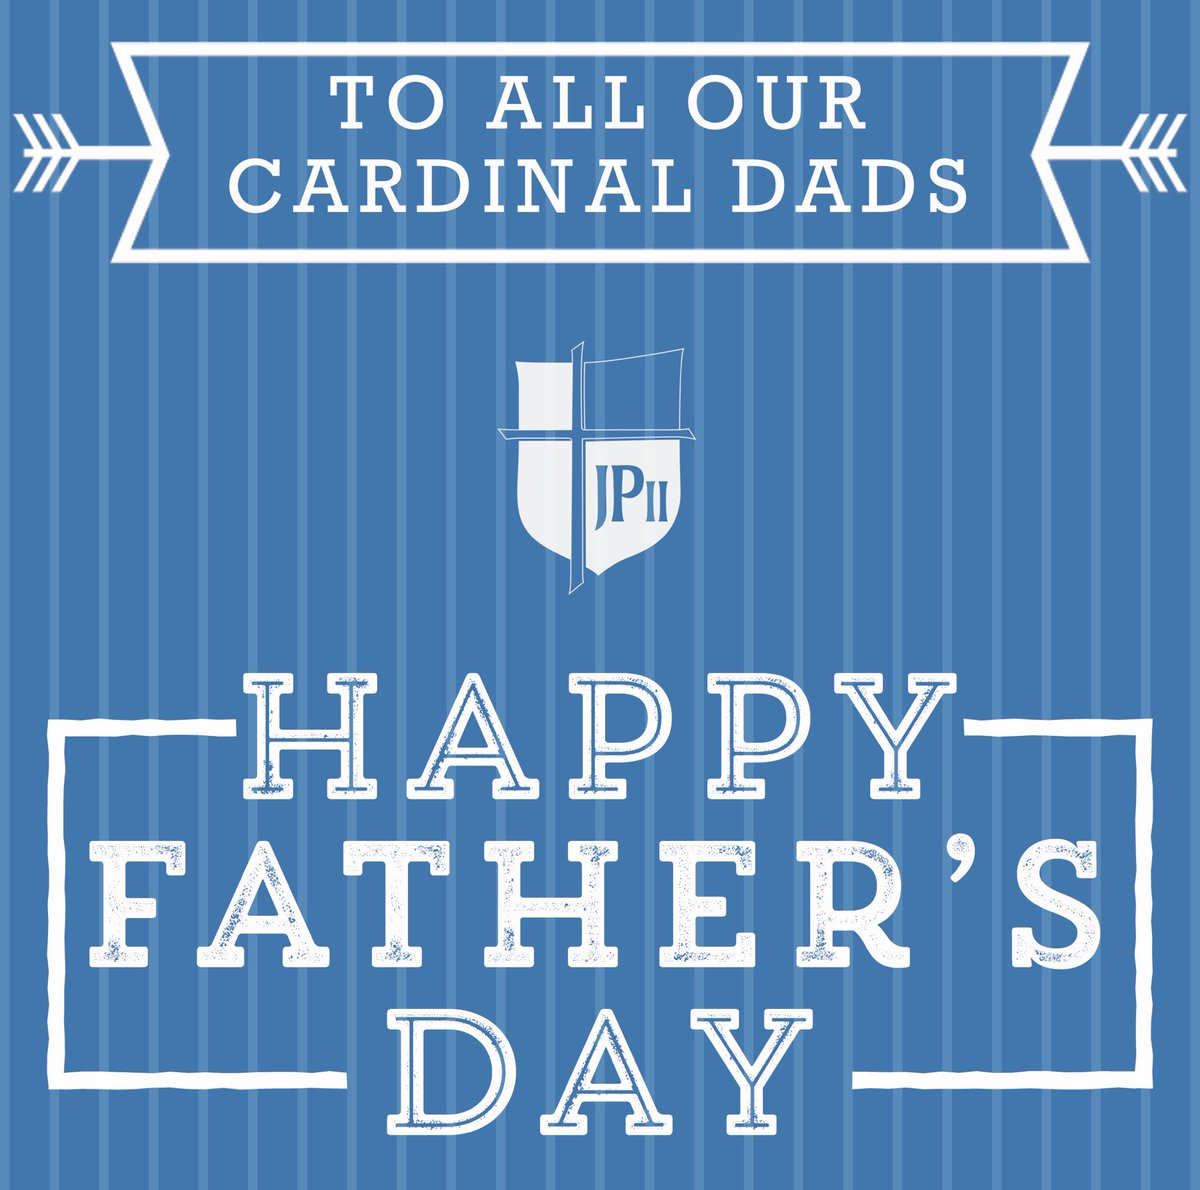 Giving thanks today for all the fathers in our Cardinal Family.  #thankyou #CardinalDads